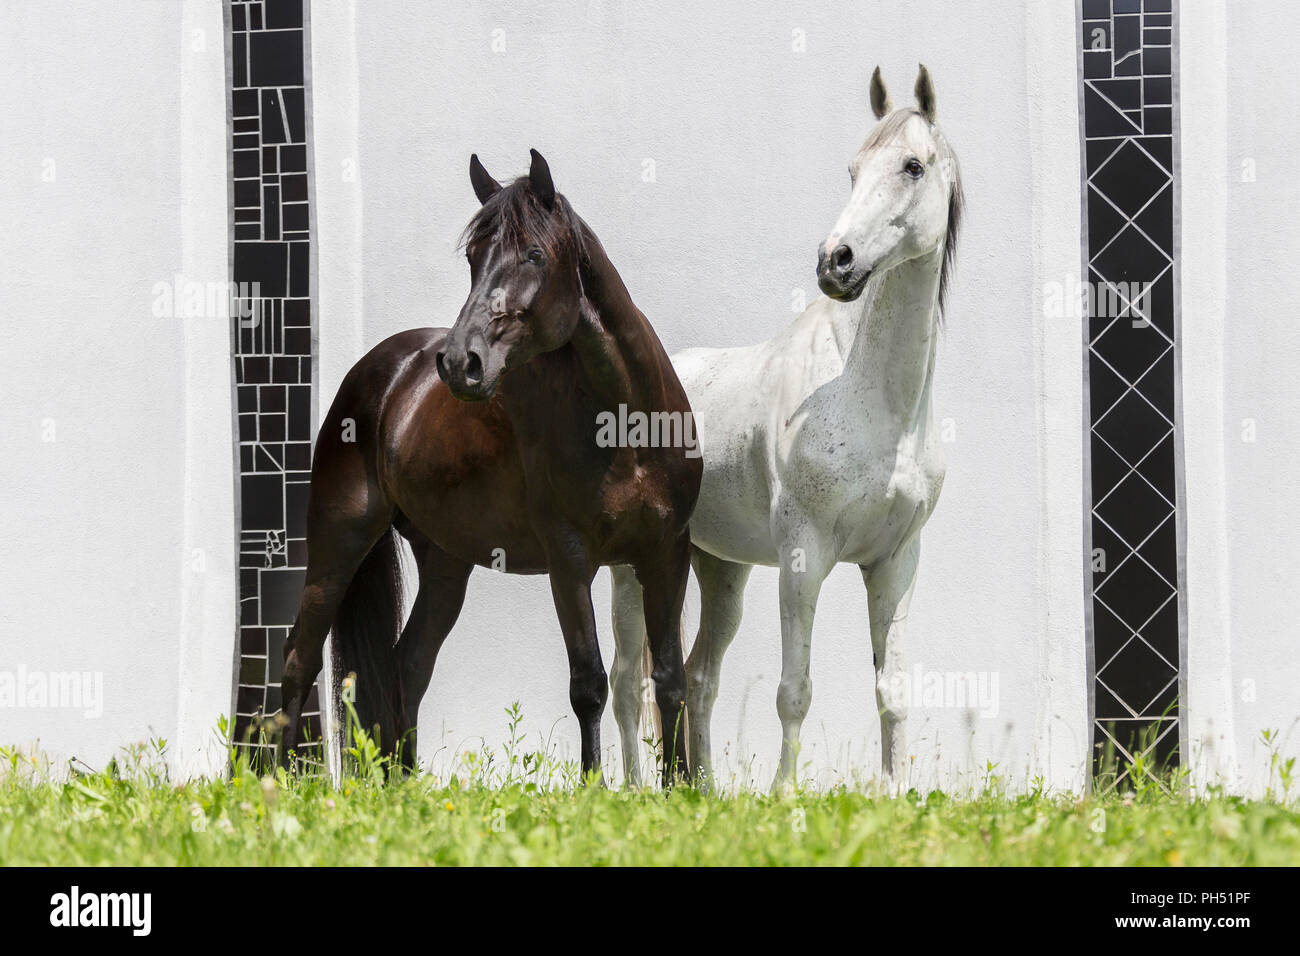 Thoroughbred and Austrian Warmblood. Gray gelding standing, seen against a white background. Austria - Stock Image